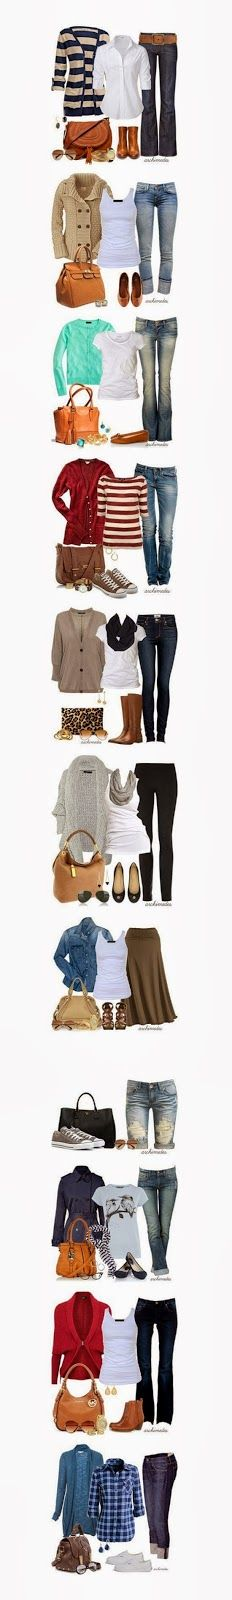 Top 15 outfits for fall and winters 2013 - oh my... I need a stylist. Just grab what is comfy!